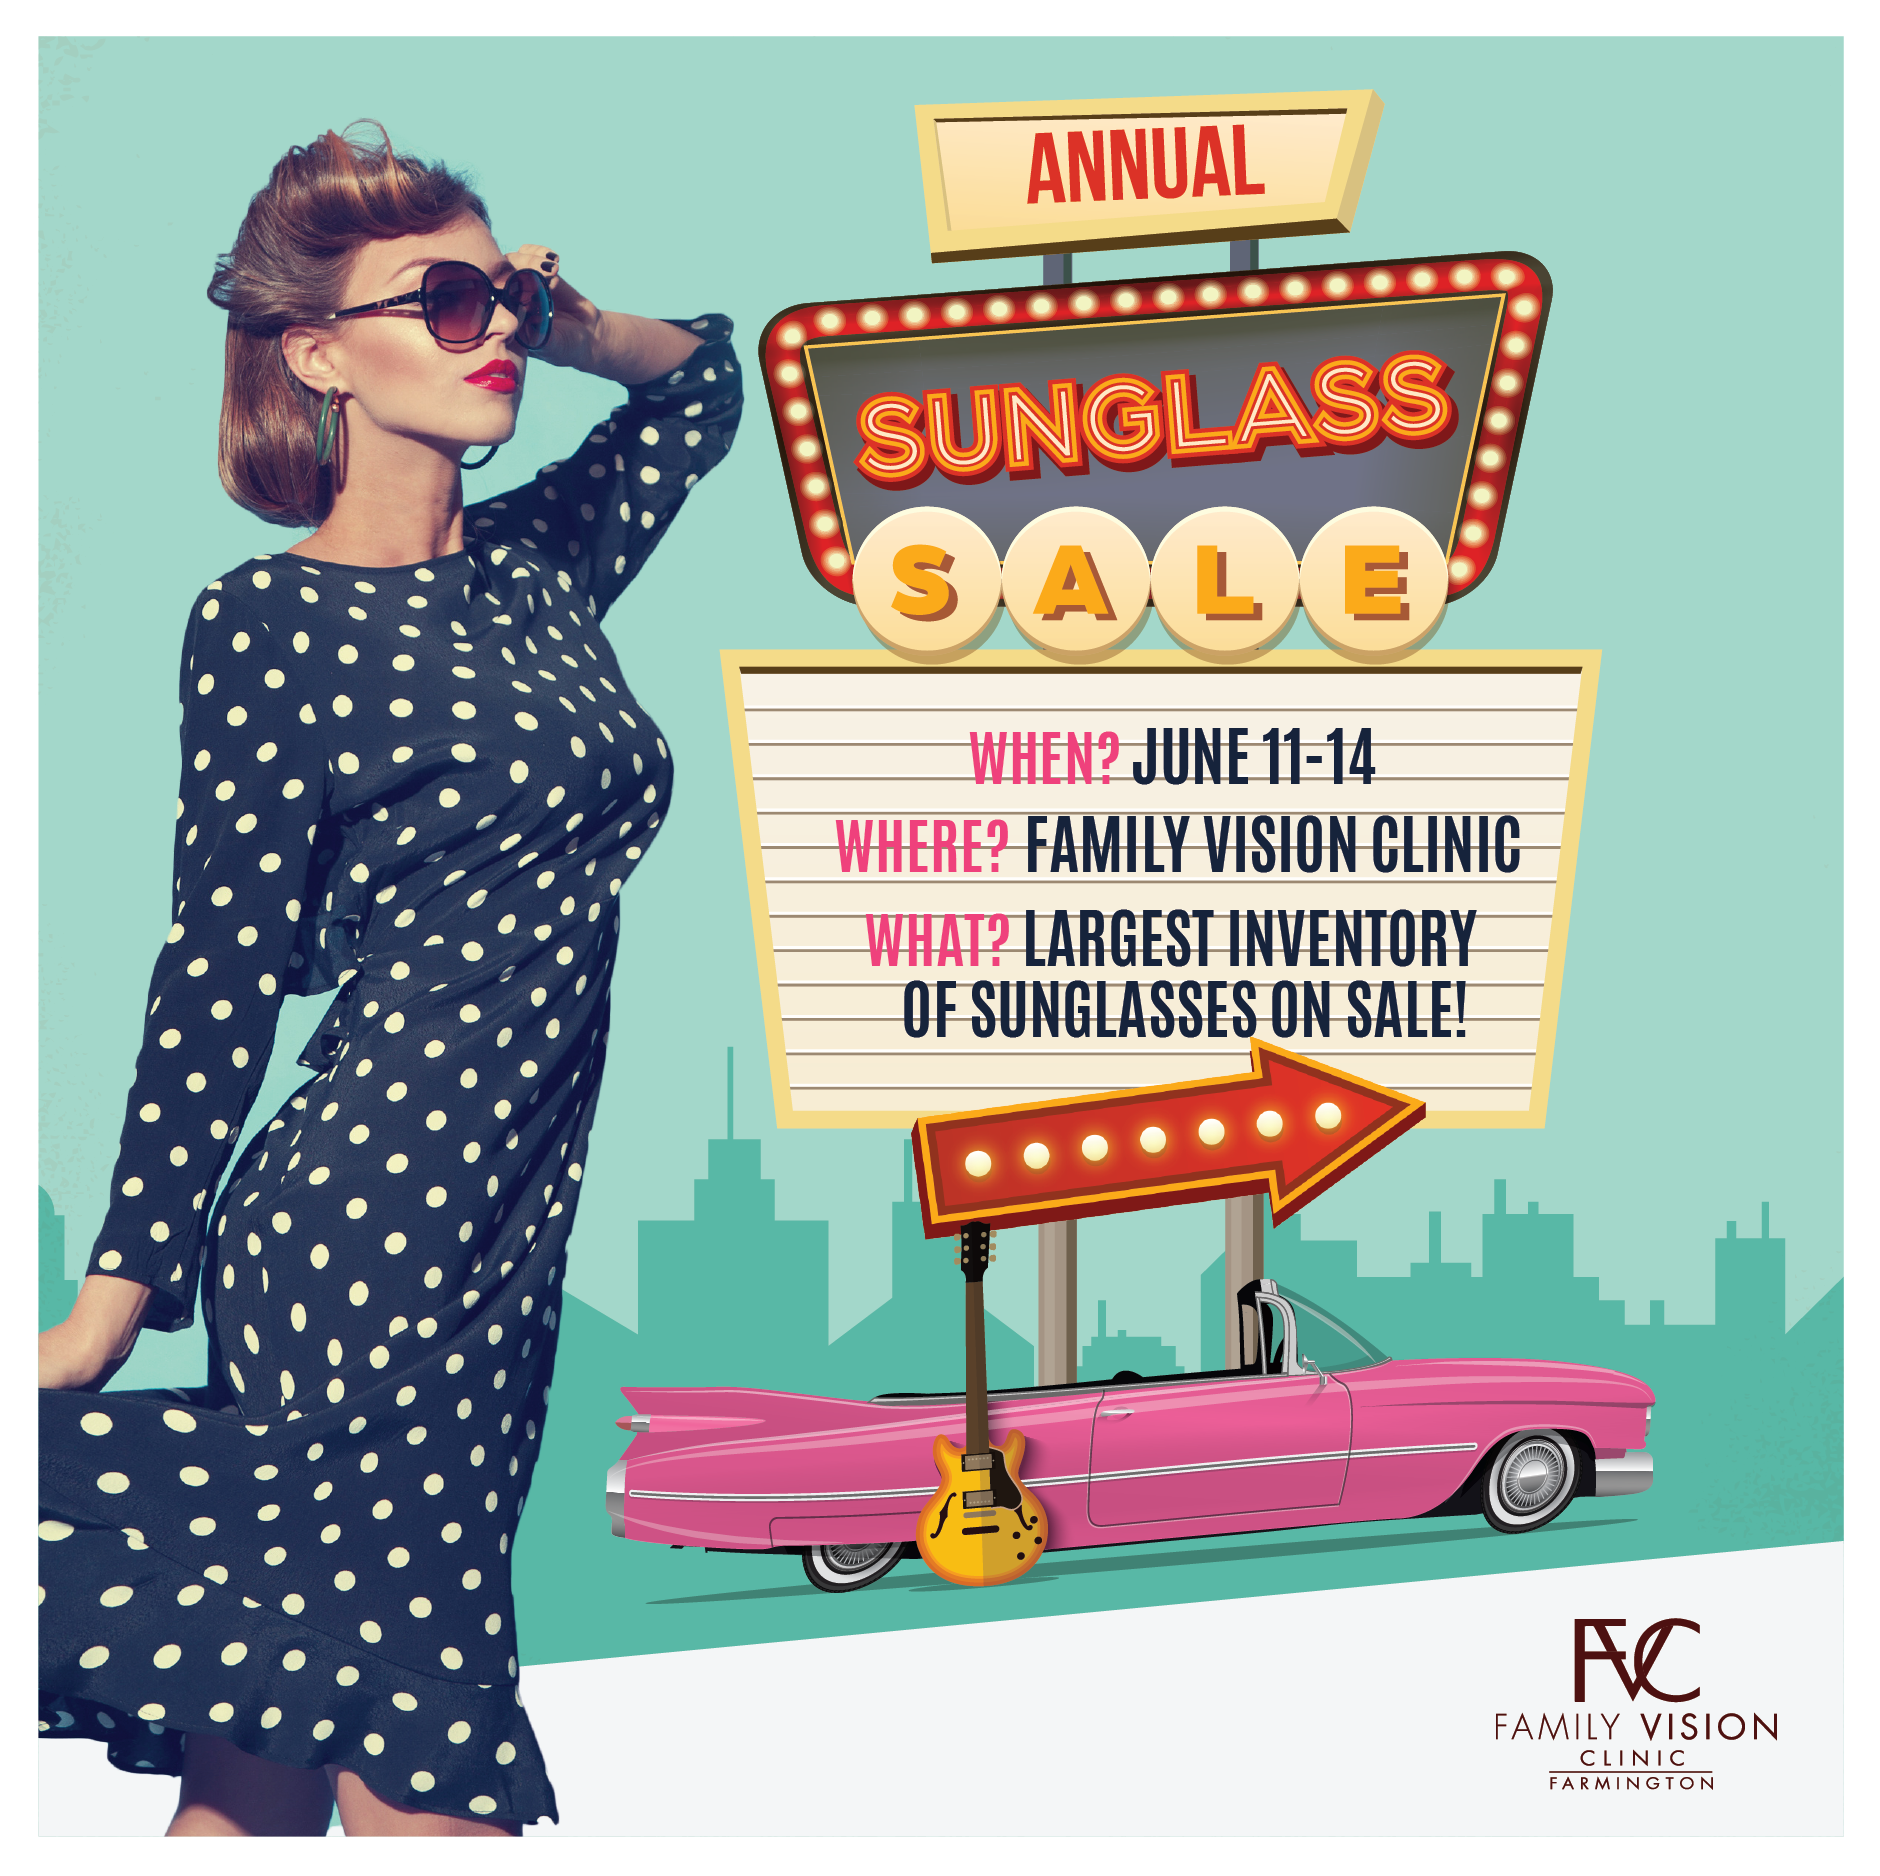 Now that the sun has decided to show its face and summer has arrived...Come join FVC for our ANNUAL 50% OFF SUNGLASSES SALE!!!!  When: June 11-14  We will be hosting an Ice Cream Social, with ice cream from Chill of Farmington, to kick off the event on Tuesday 6/11 from 9am-7pm. Browse our expanded selection of designer frames while enjoying an ice cream treat!